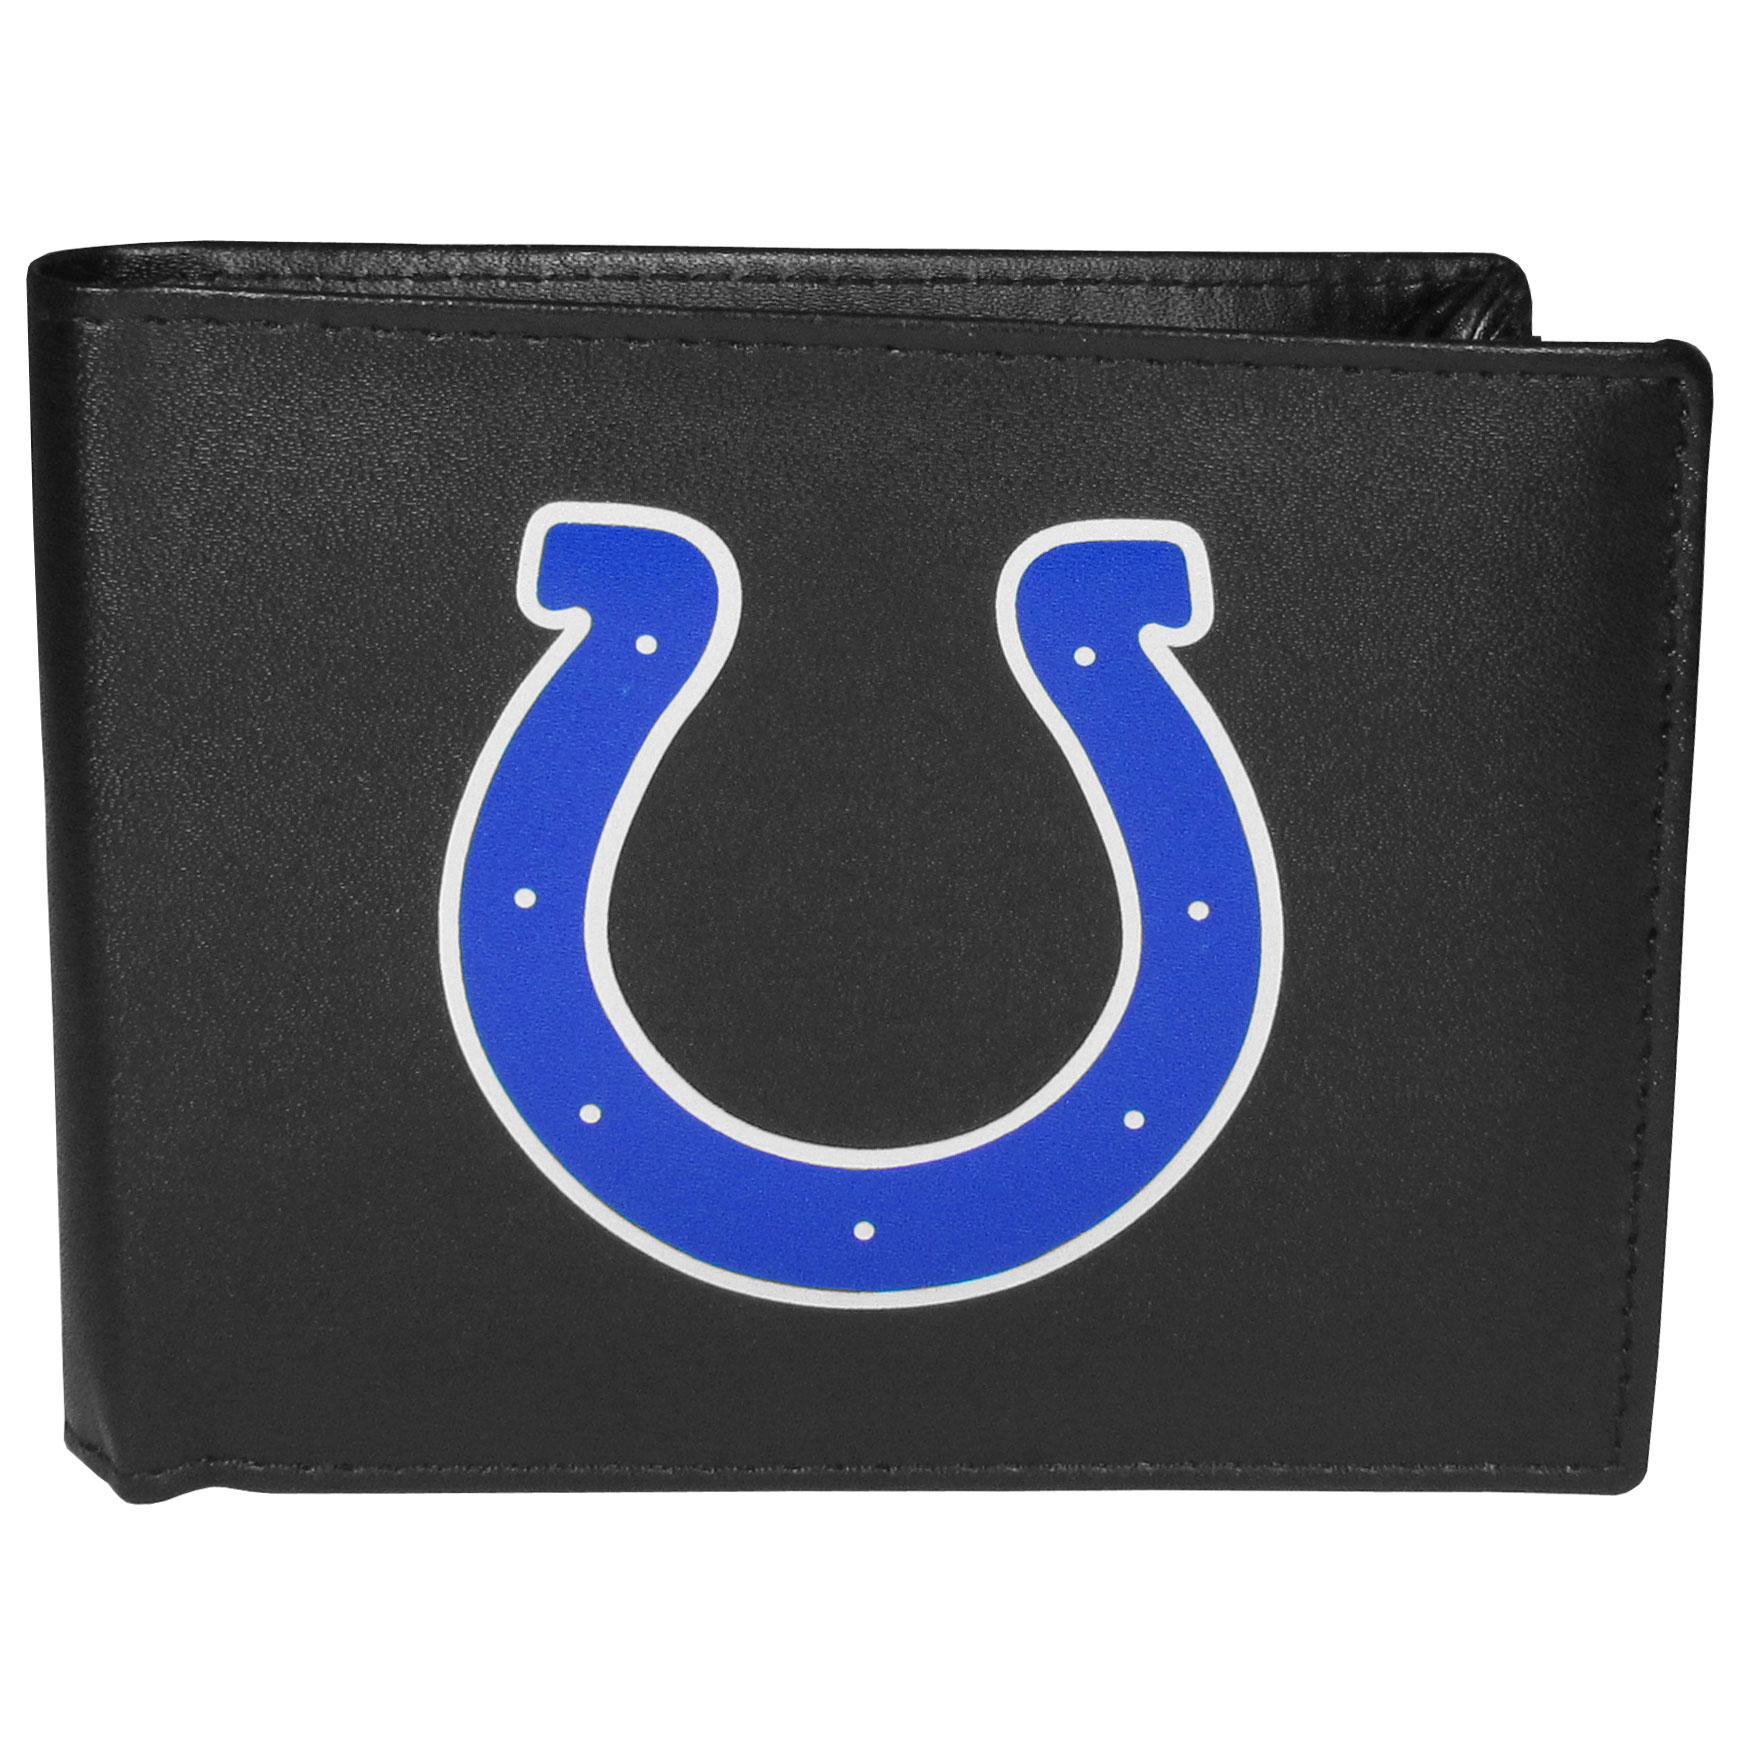 Indianapolis Colts Bi-fold Wallet Large Logo - Sports fans do not have to sacrifice style with this classic bi-fold wallet that sports the Indianapolis Colts extra large logo. This men's fashion accessory has a leather grain look and expert craftmanship for a quality wallet at a great price. The wallet features inner credit card slots, windowed ID slot and a large billfold pocket. The front of the wallet features a printed team logo.